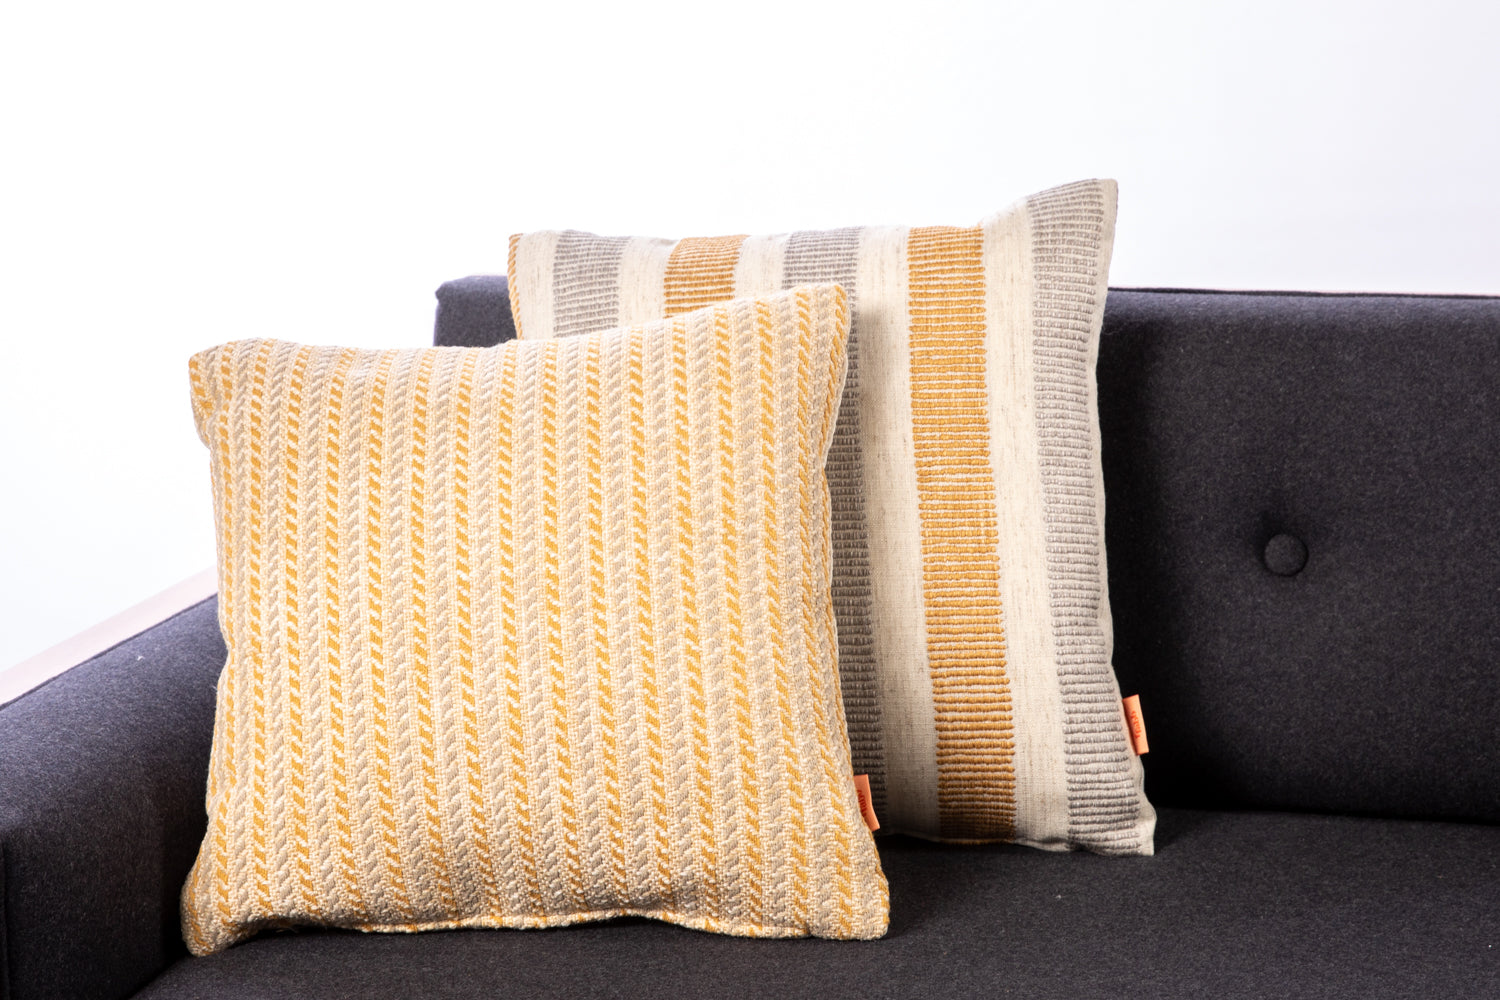 ffabb toss pillows, RADG & Maxwell small scale pattern, woven